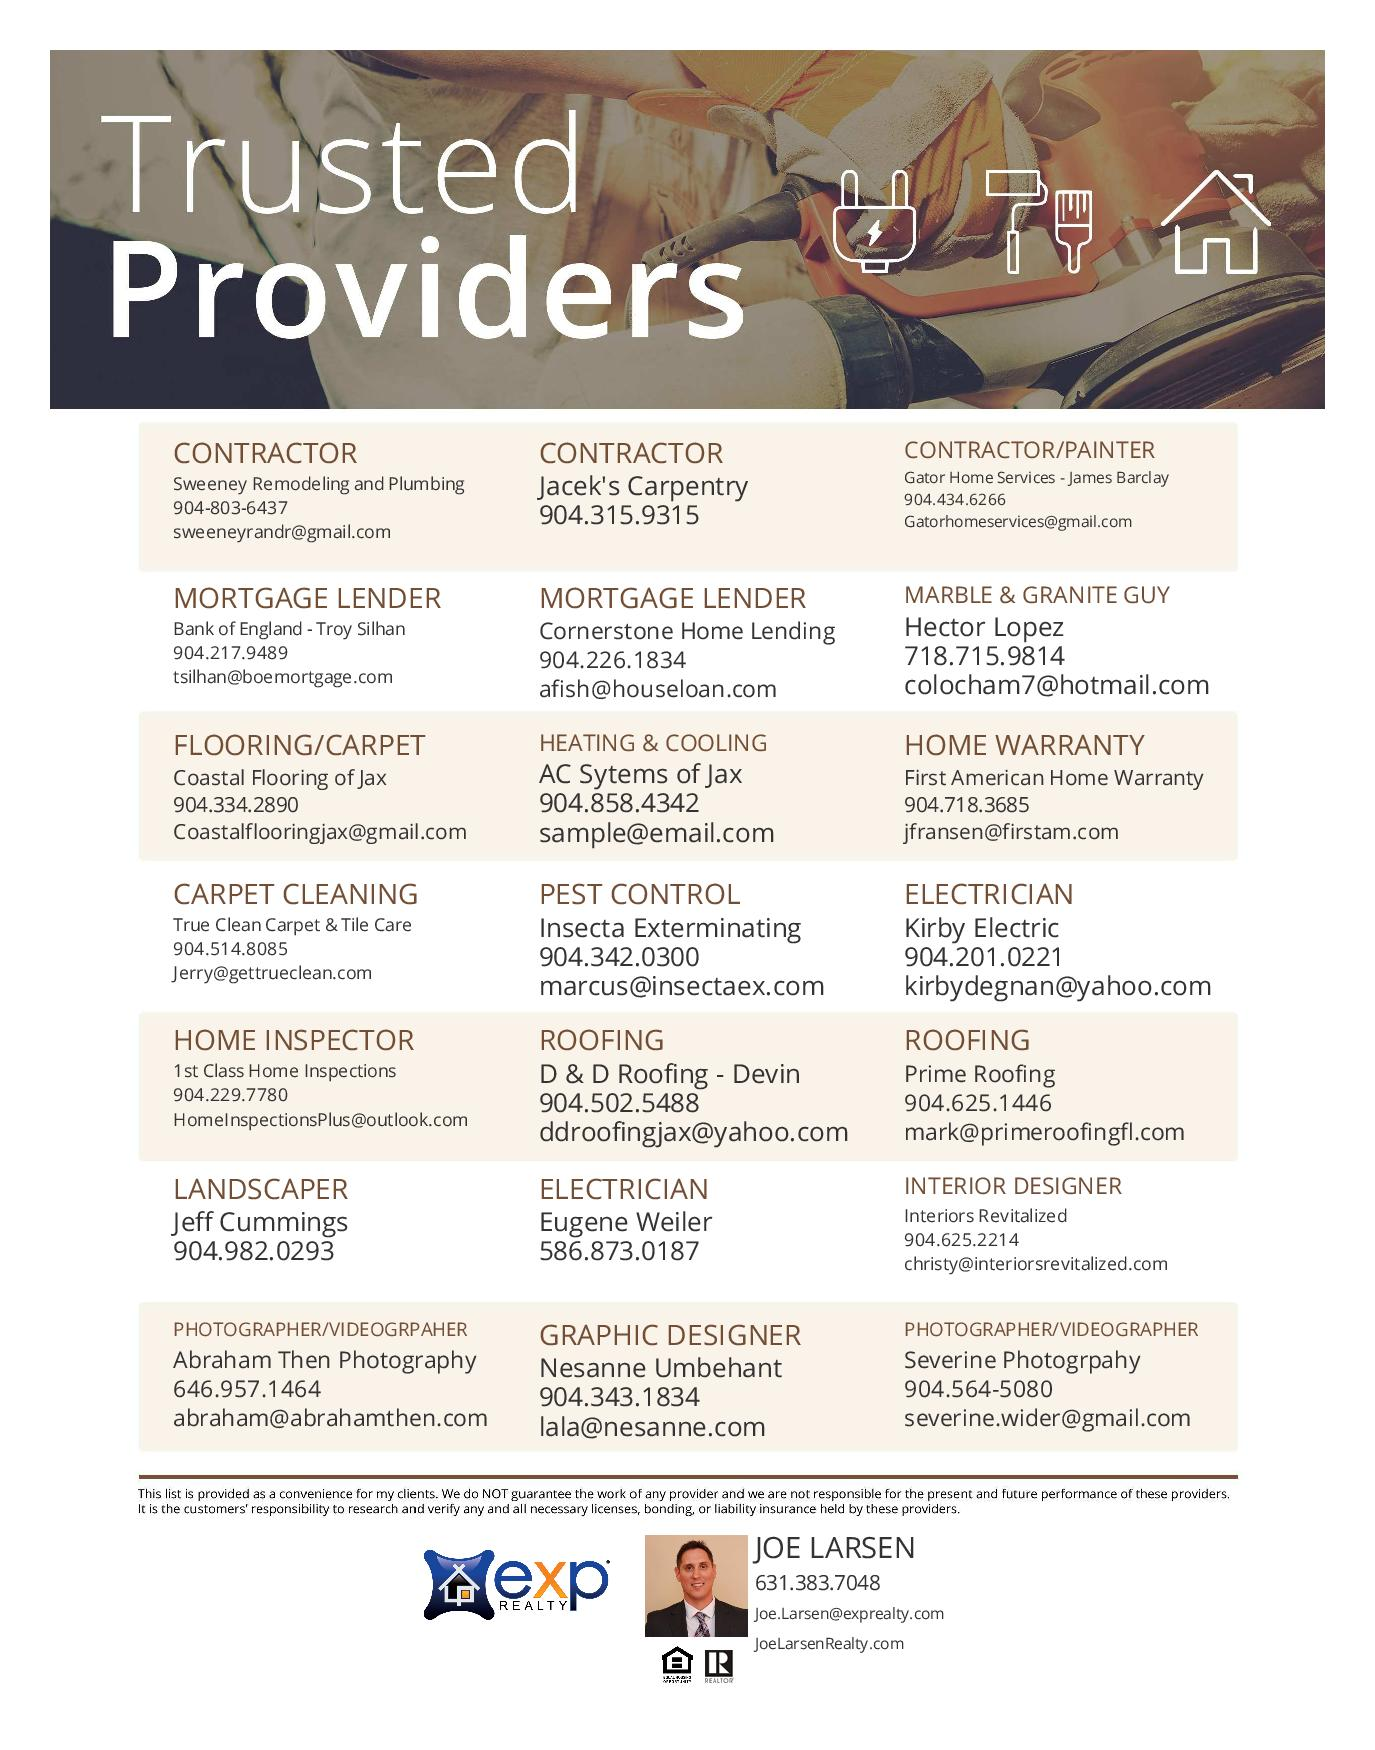 Trusted Providers